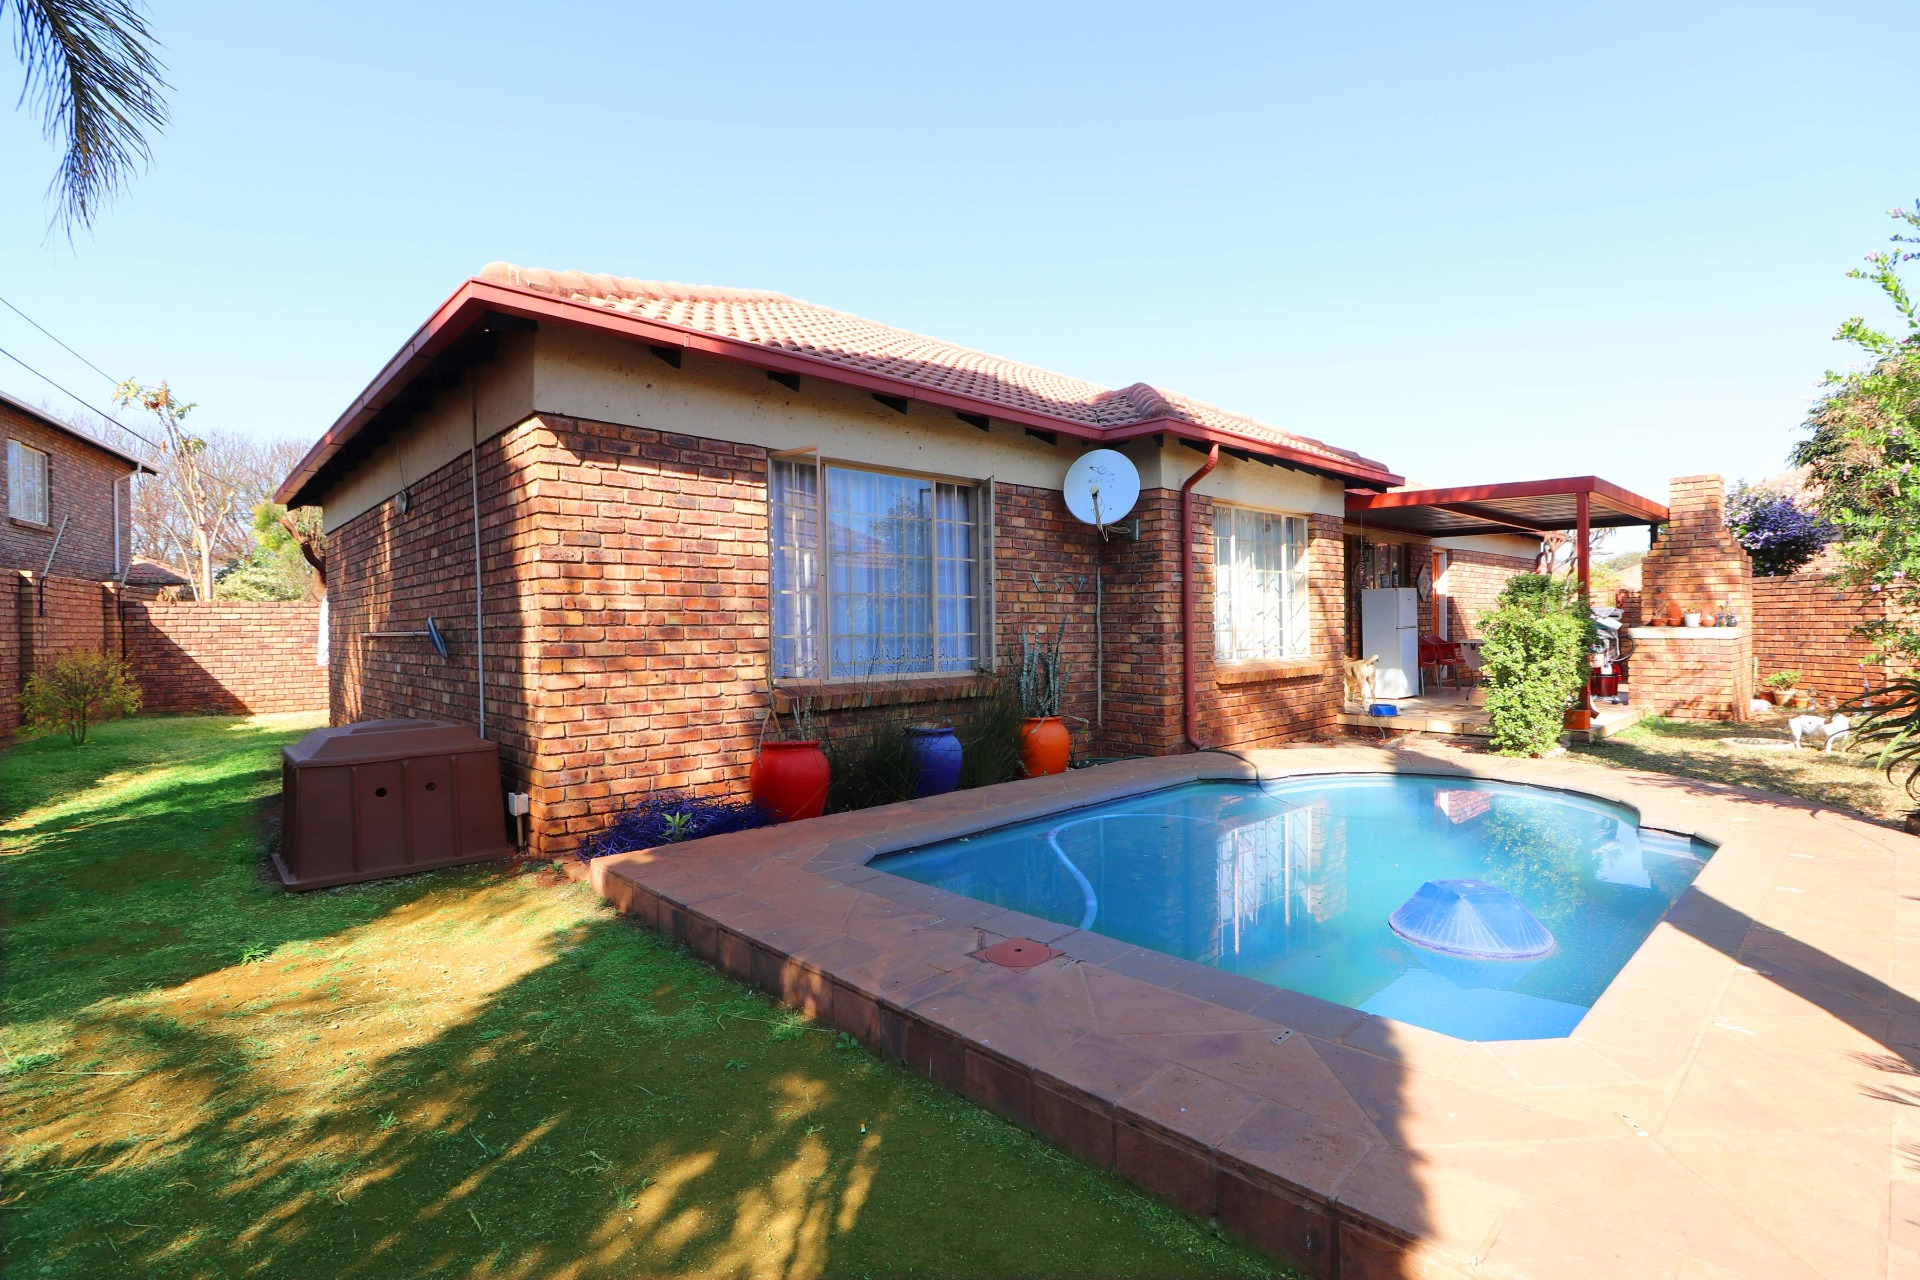 3 Bedroom Townhouse in The Popular Highveld Estate